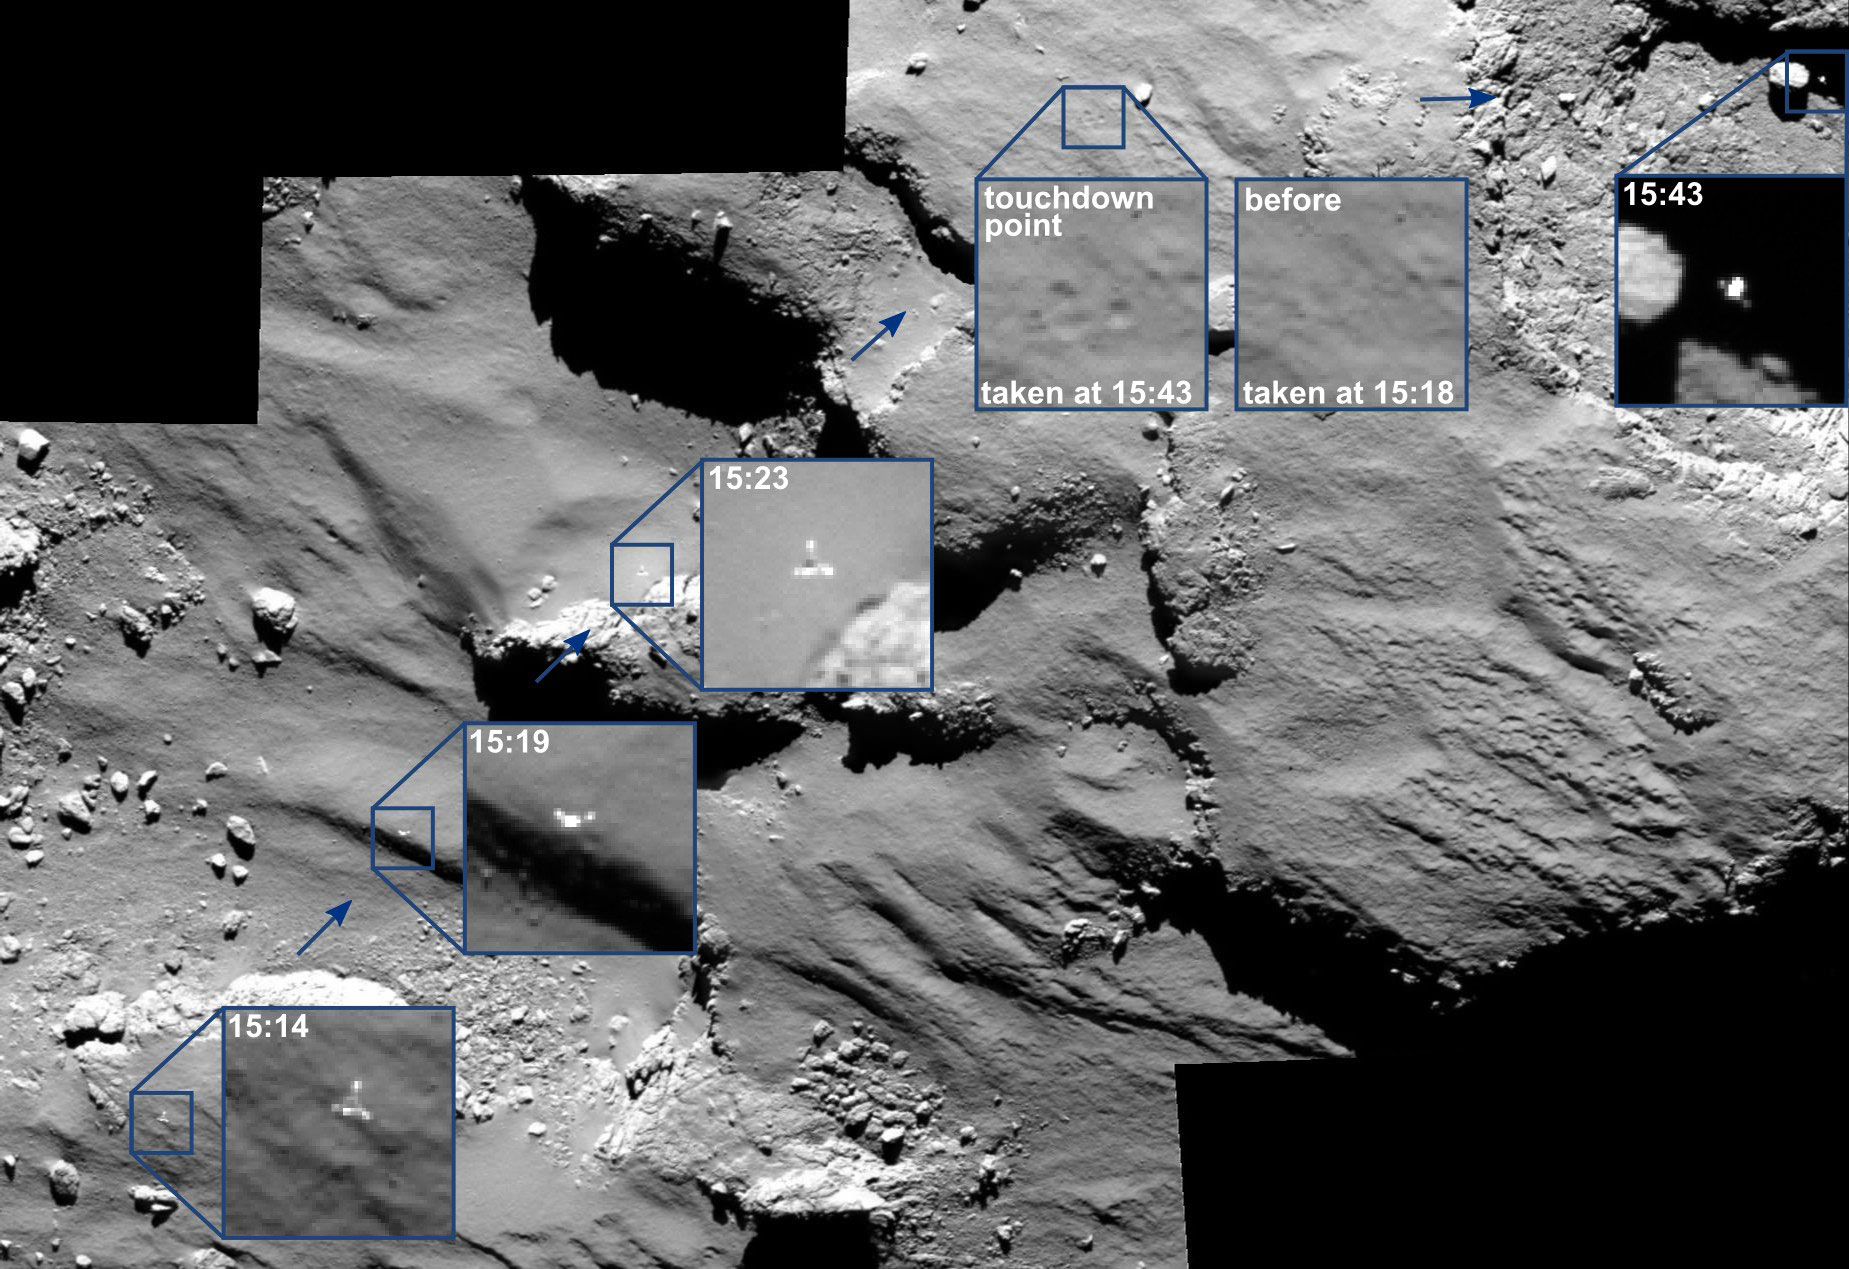 The Rosetta spacecraft recorded the farewell of the Philae lander as it descended to Comet 67P/Churyumov-Gerasimenko and bounced across its surface before coming to a final stop. Credits: ESA/Rosetta/Philae/CIVA; ESA/Rosetta/MPS for OSIRIS Team MPS/UPD/LAM/IAA/SSO/INTA/UPM/DASP/IDA,;and ESA/Rosetta/Philae/ROLIS/DLR